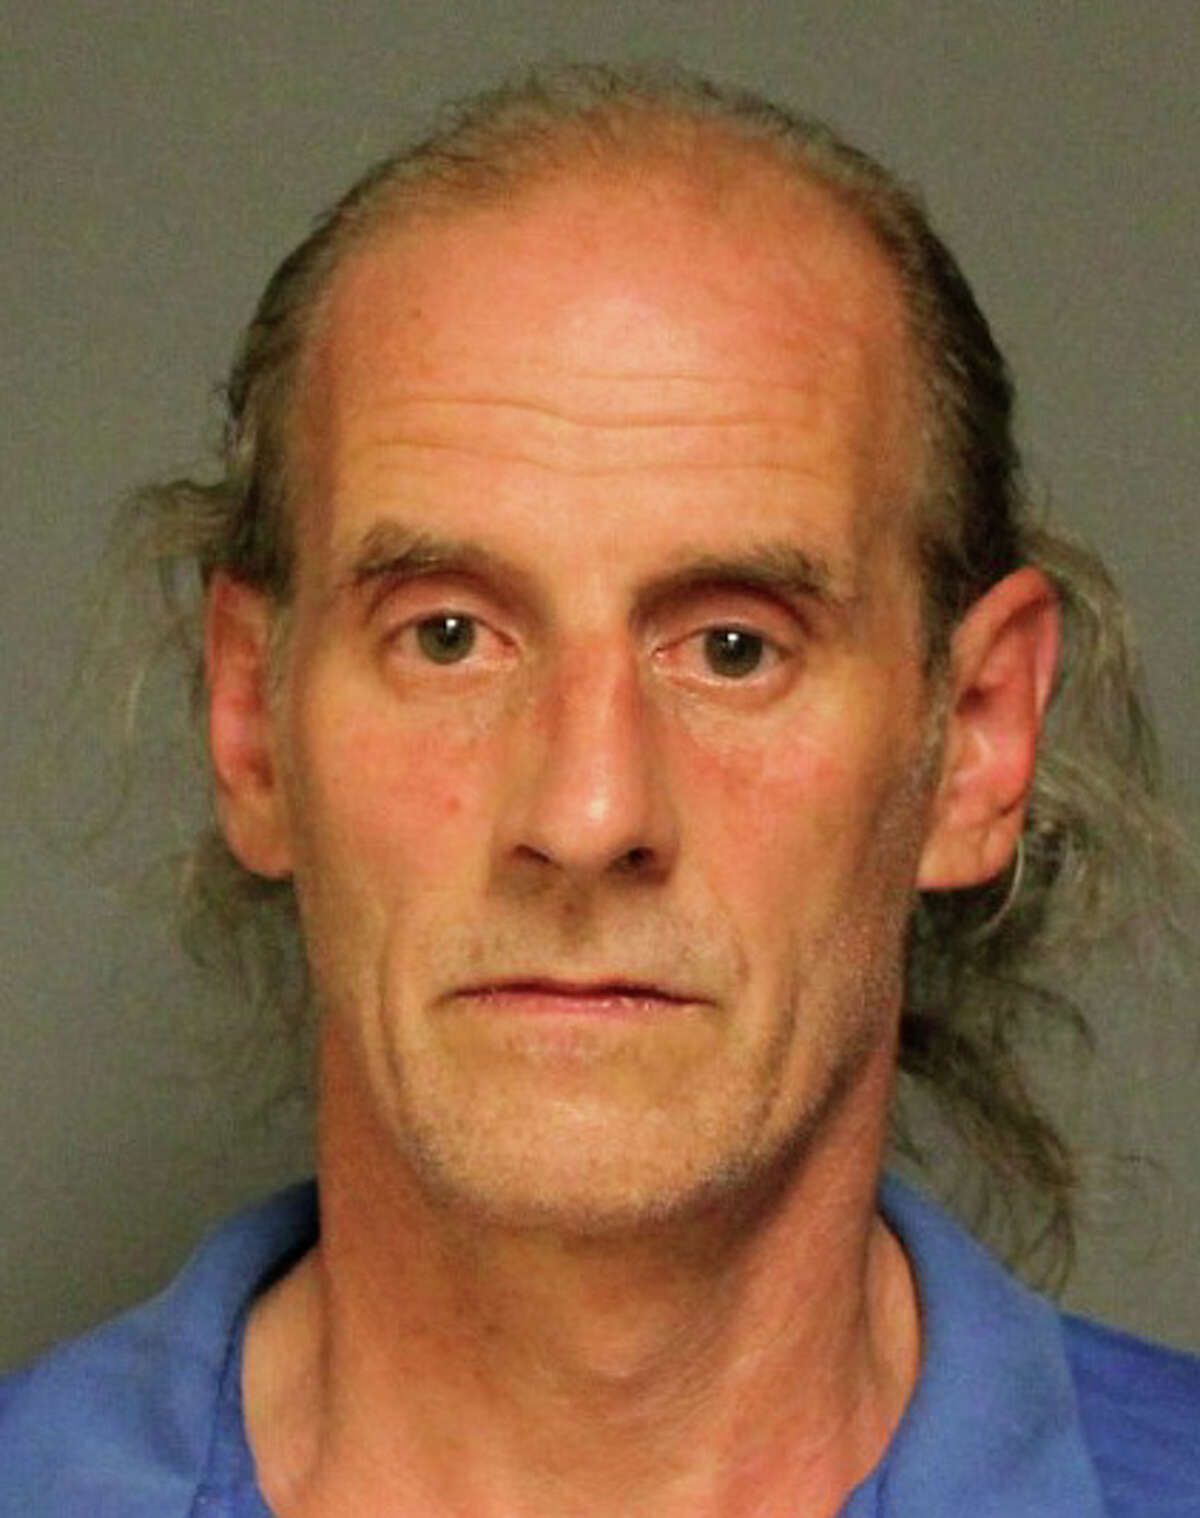 Robert Michael Kovatch of Mayfair Road was charged with sixth-degree larceny after police said he deposited and then cashed two phoney checks.